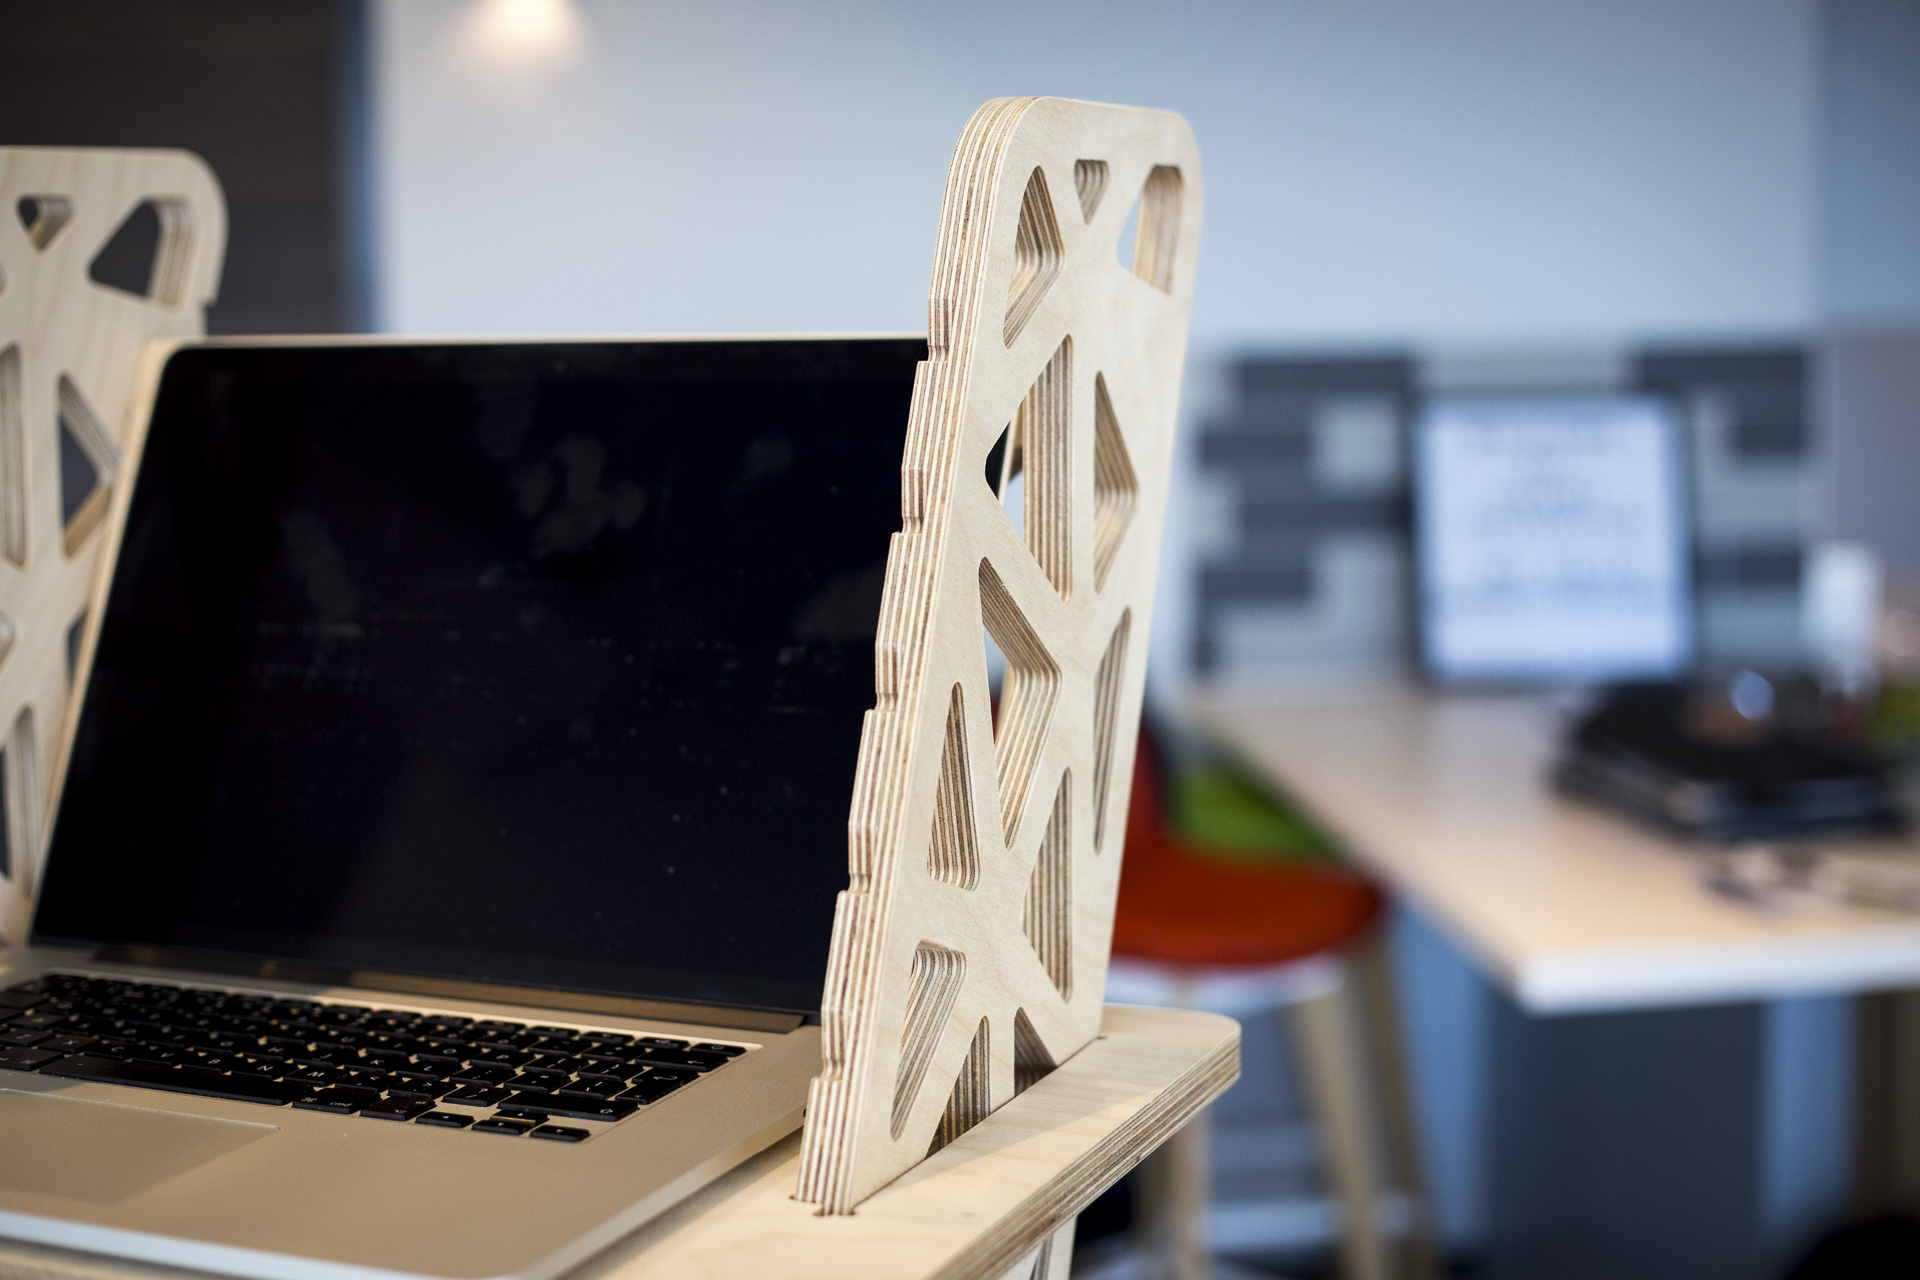 Details of the laptop stand and standing desk Voro